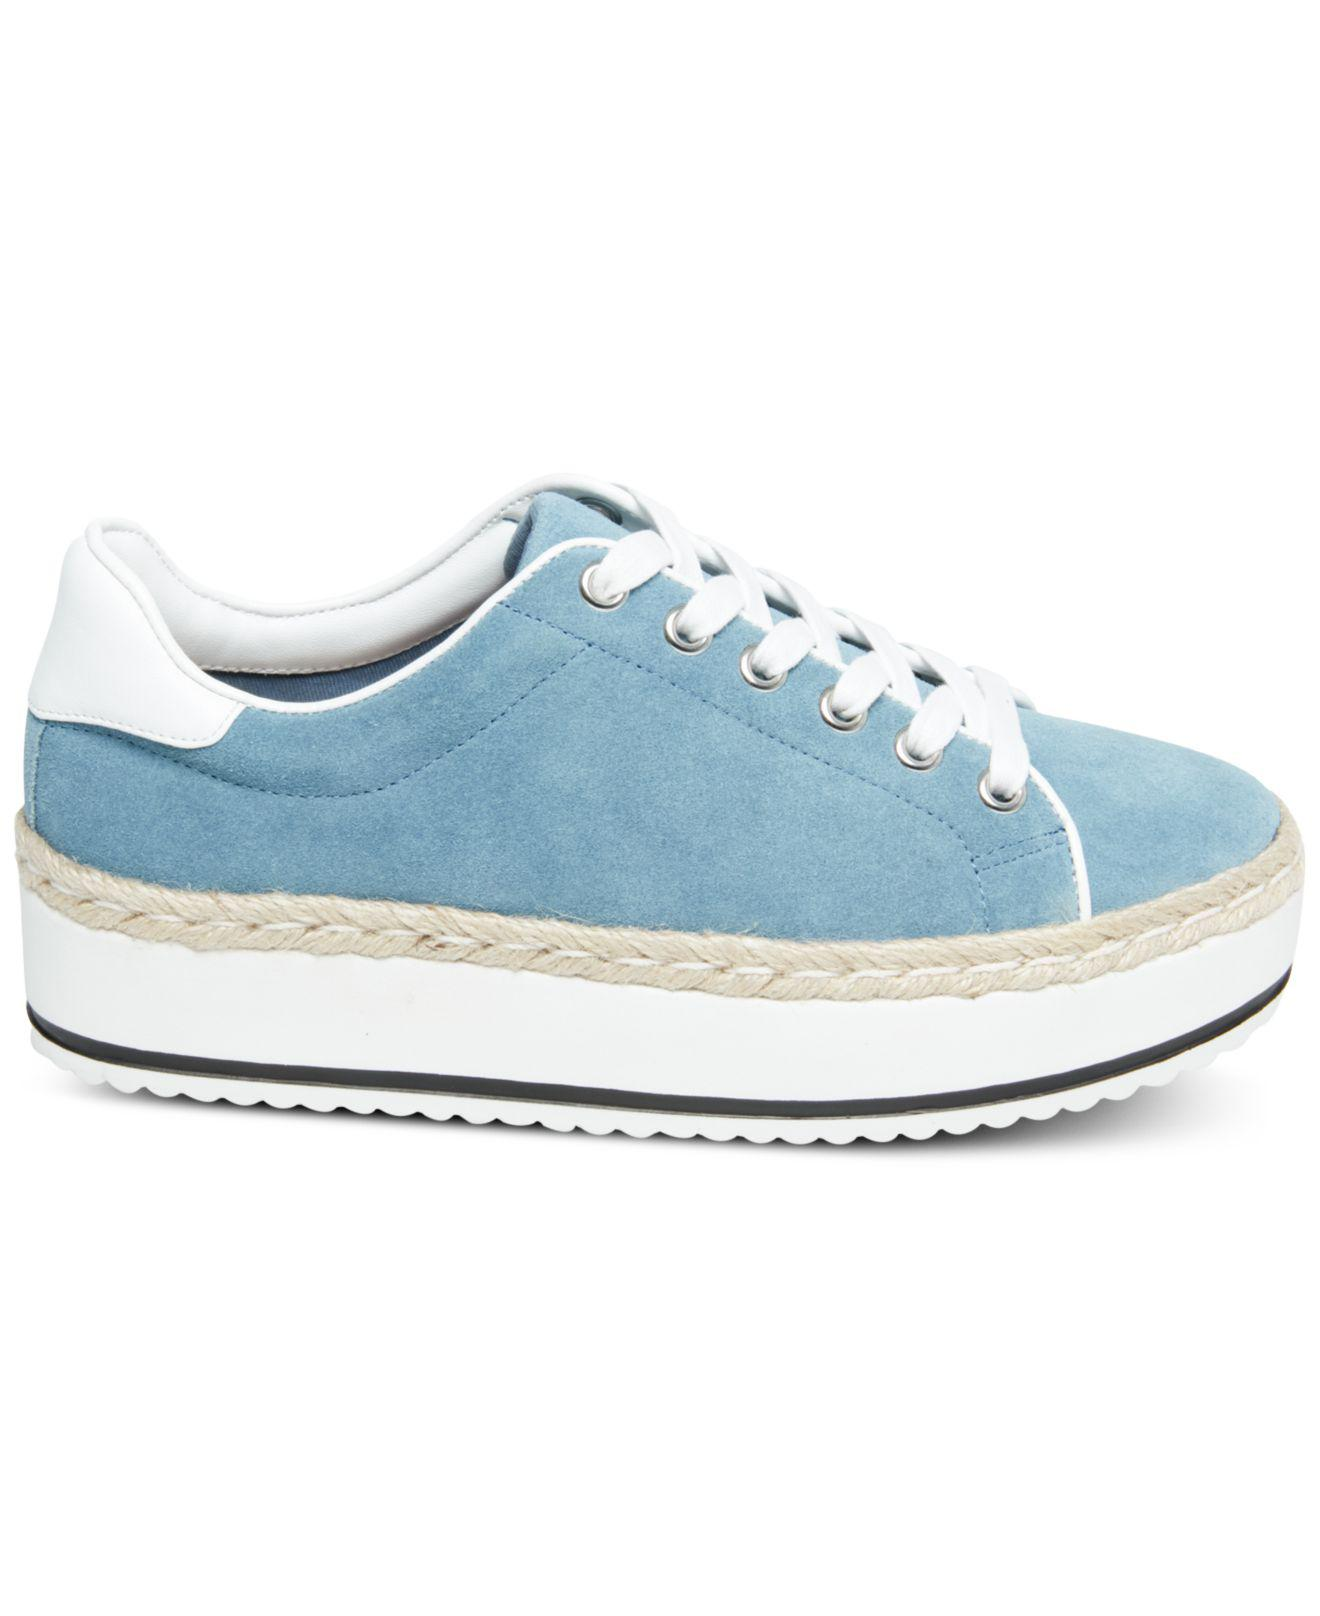 d62049fe64c Steve Madden Rule Lace-up Espadrille Sneakers in Blue - Lyst